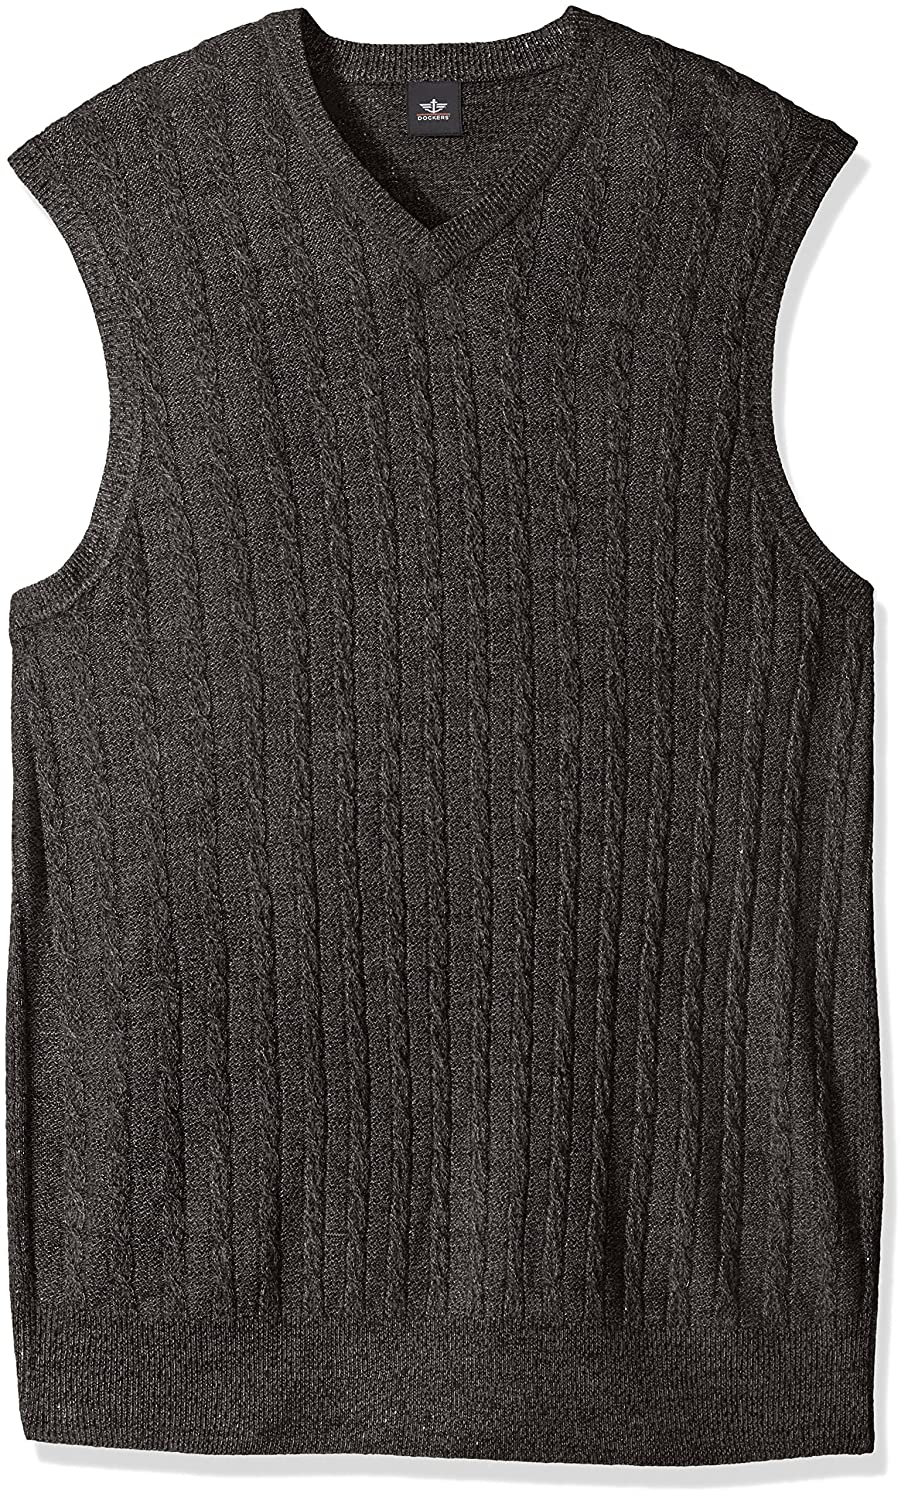 Dockers Mens Big-Tall Big & Tall Soft Acrylic Solid Cable Links Links-Vest Storm Marl Large/Tall Docker's Men's Tops 81116TF